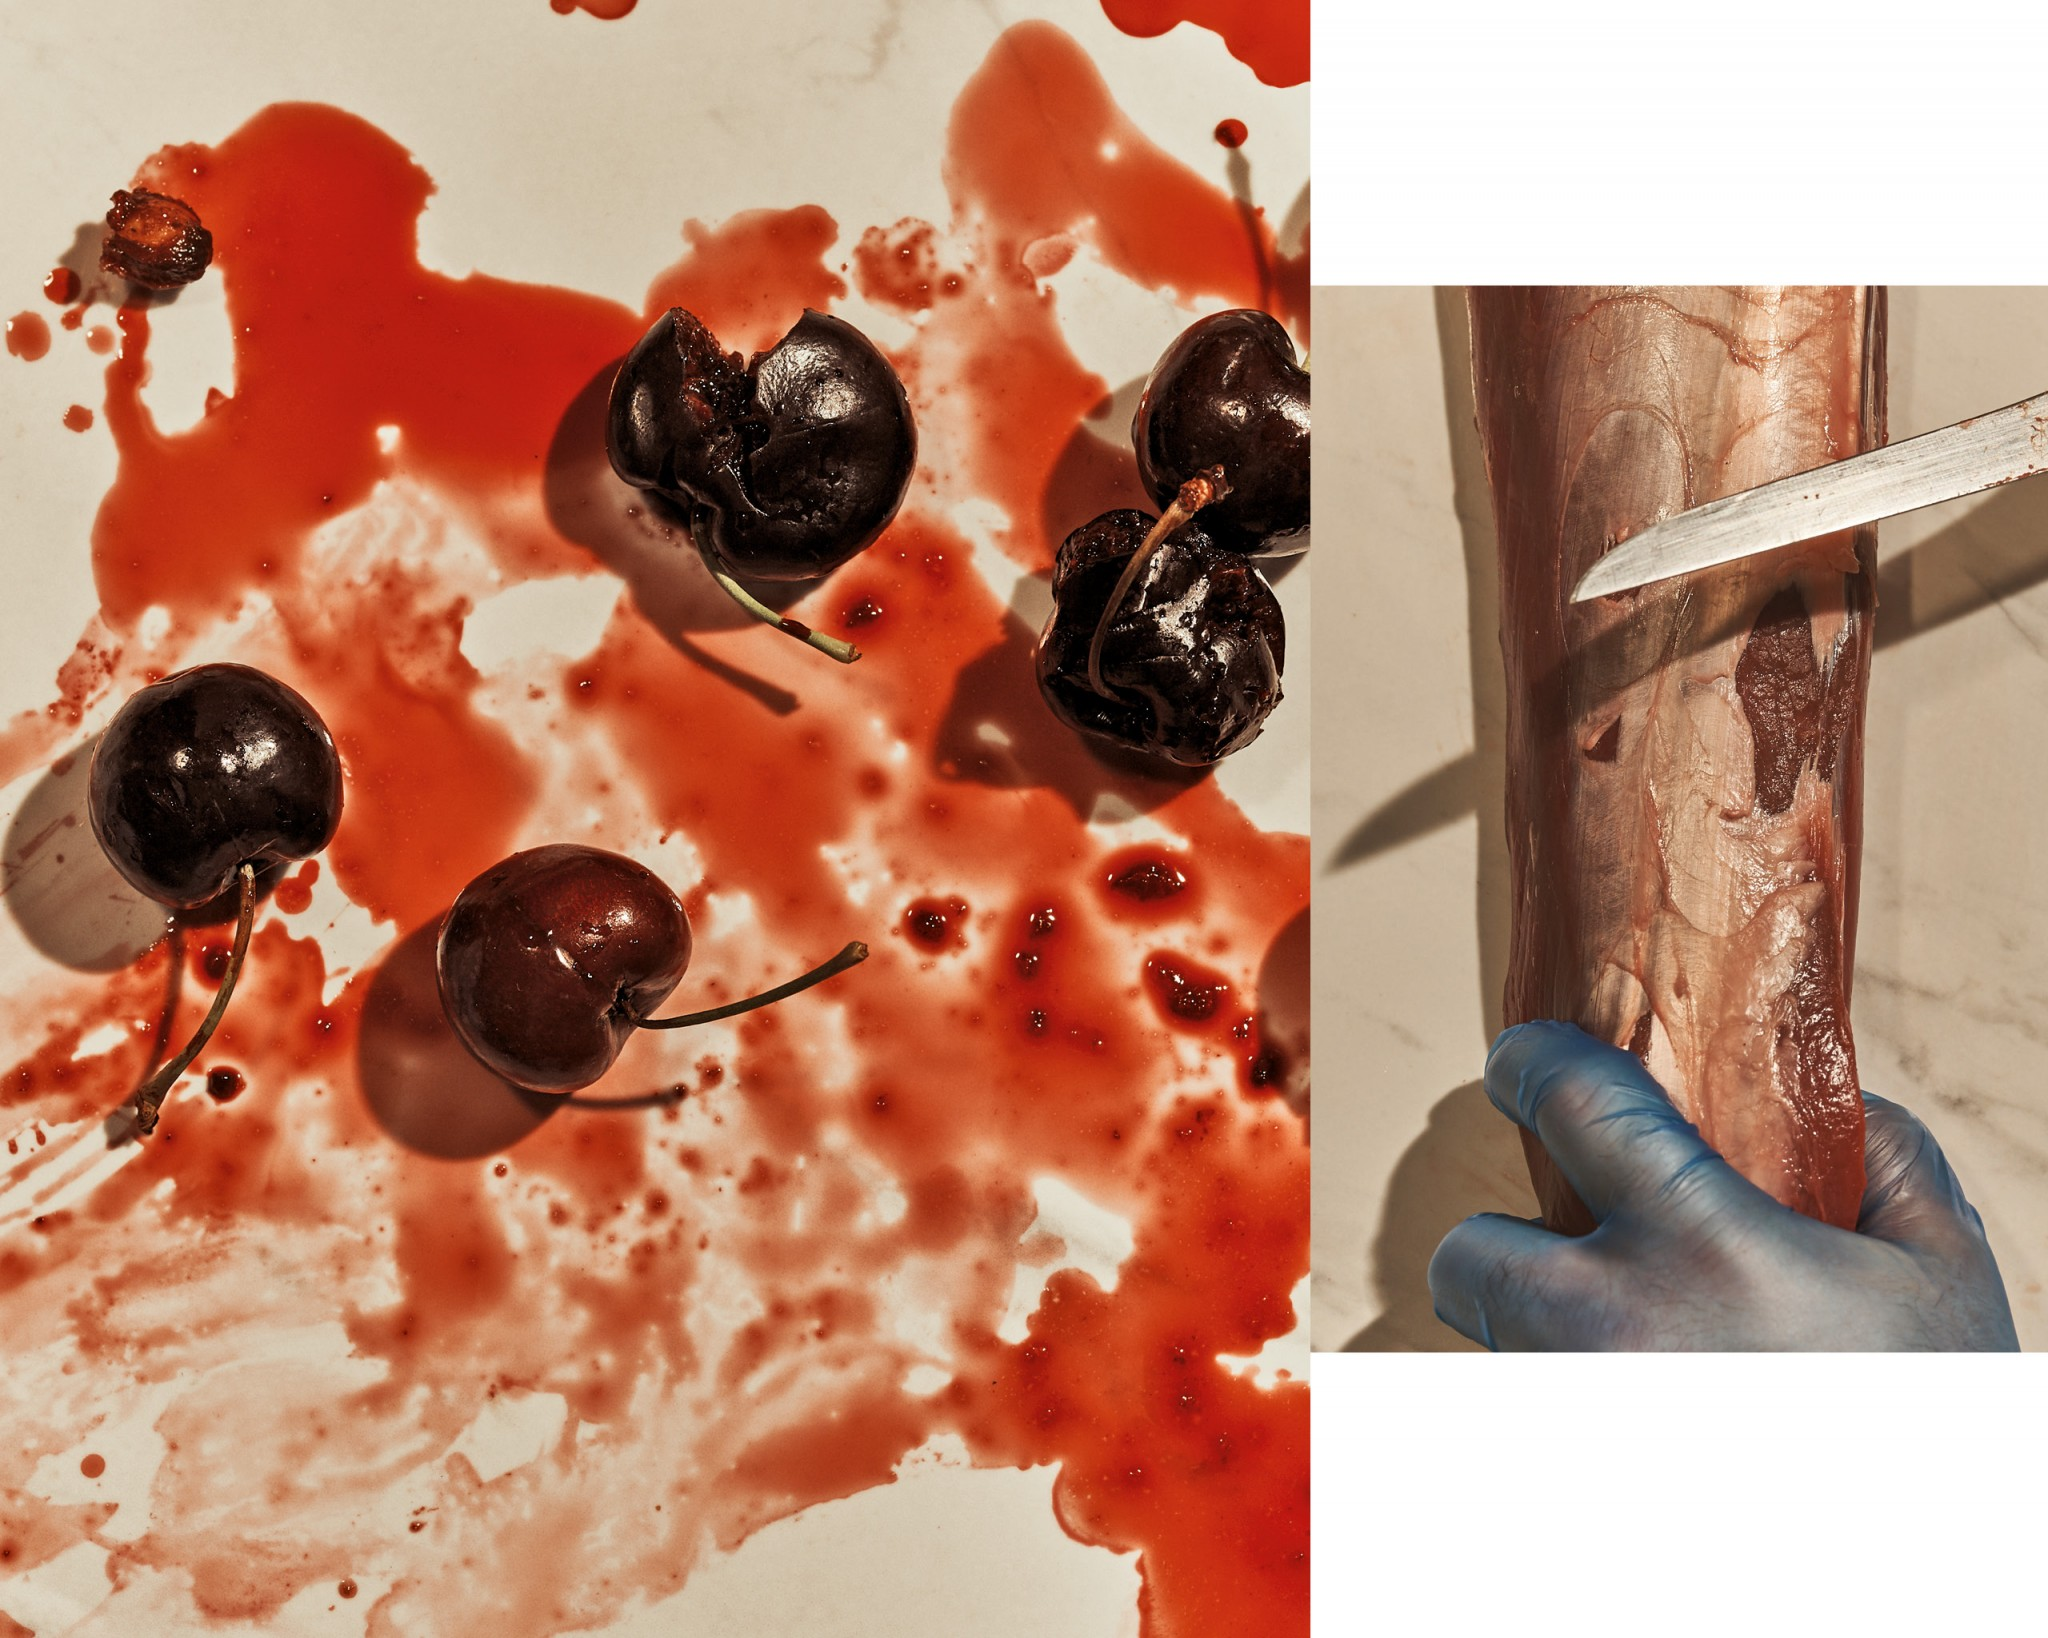 Two closeup images of cherries and someone cutting a piece of venison